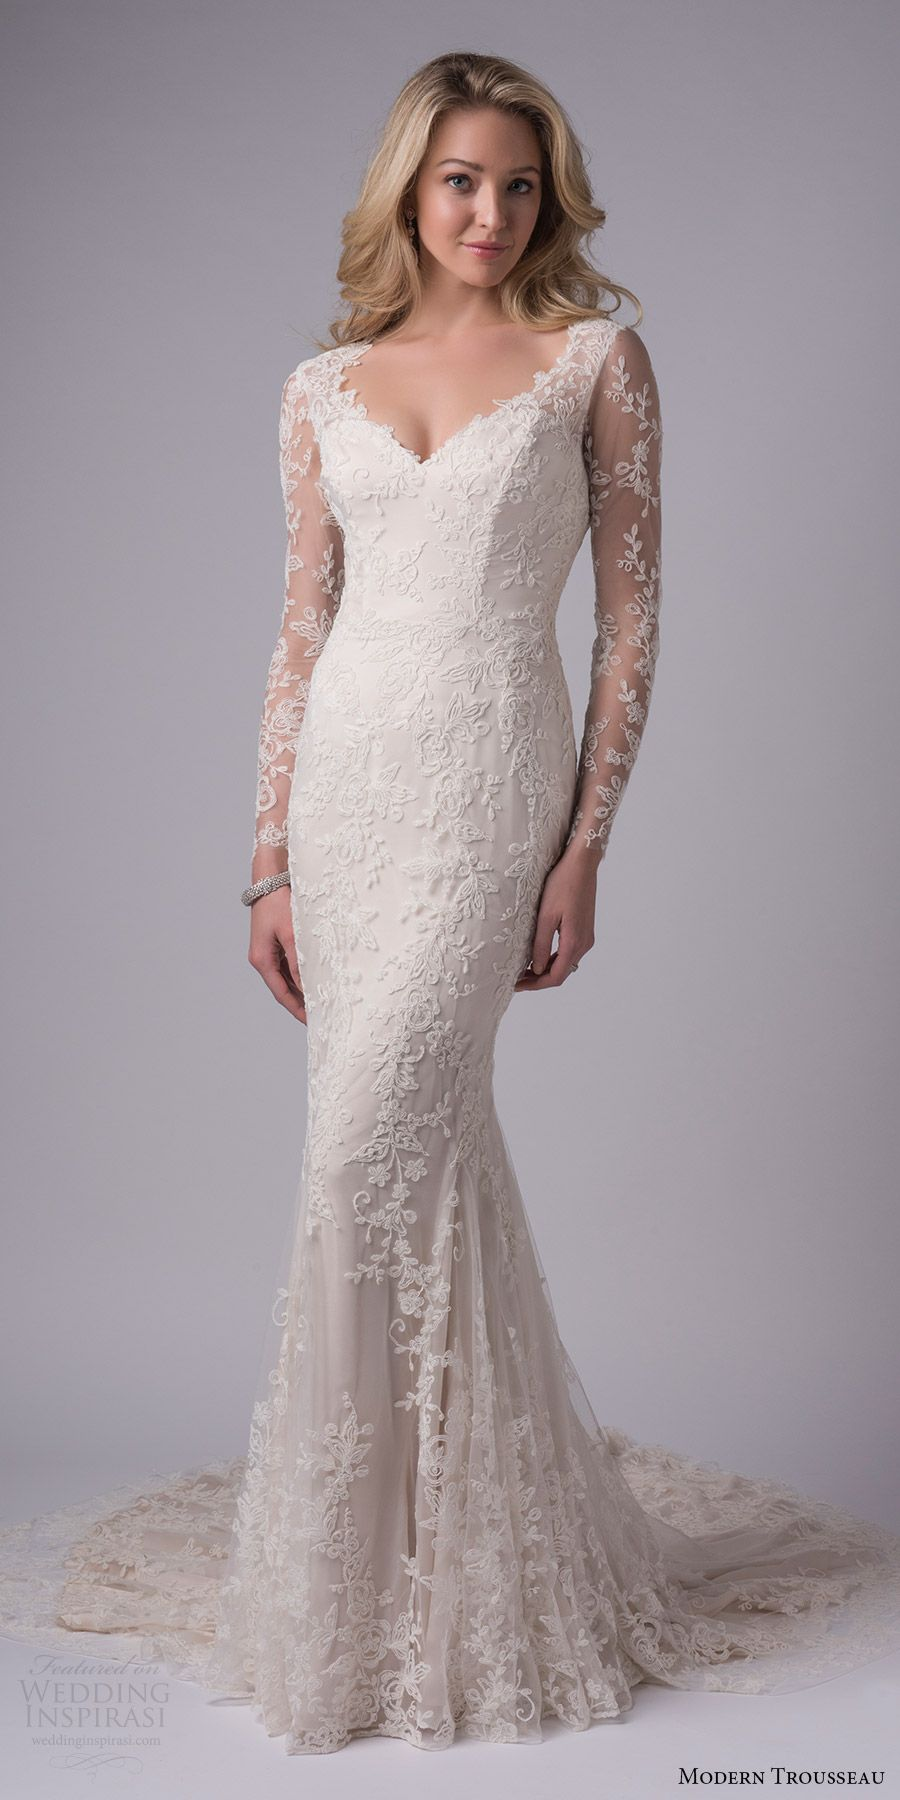 Modern Trousseau Fall 2017 Wedding Dresses Gowns With